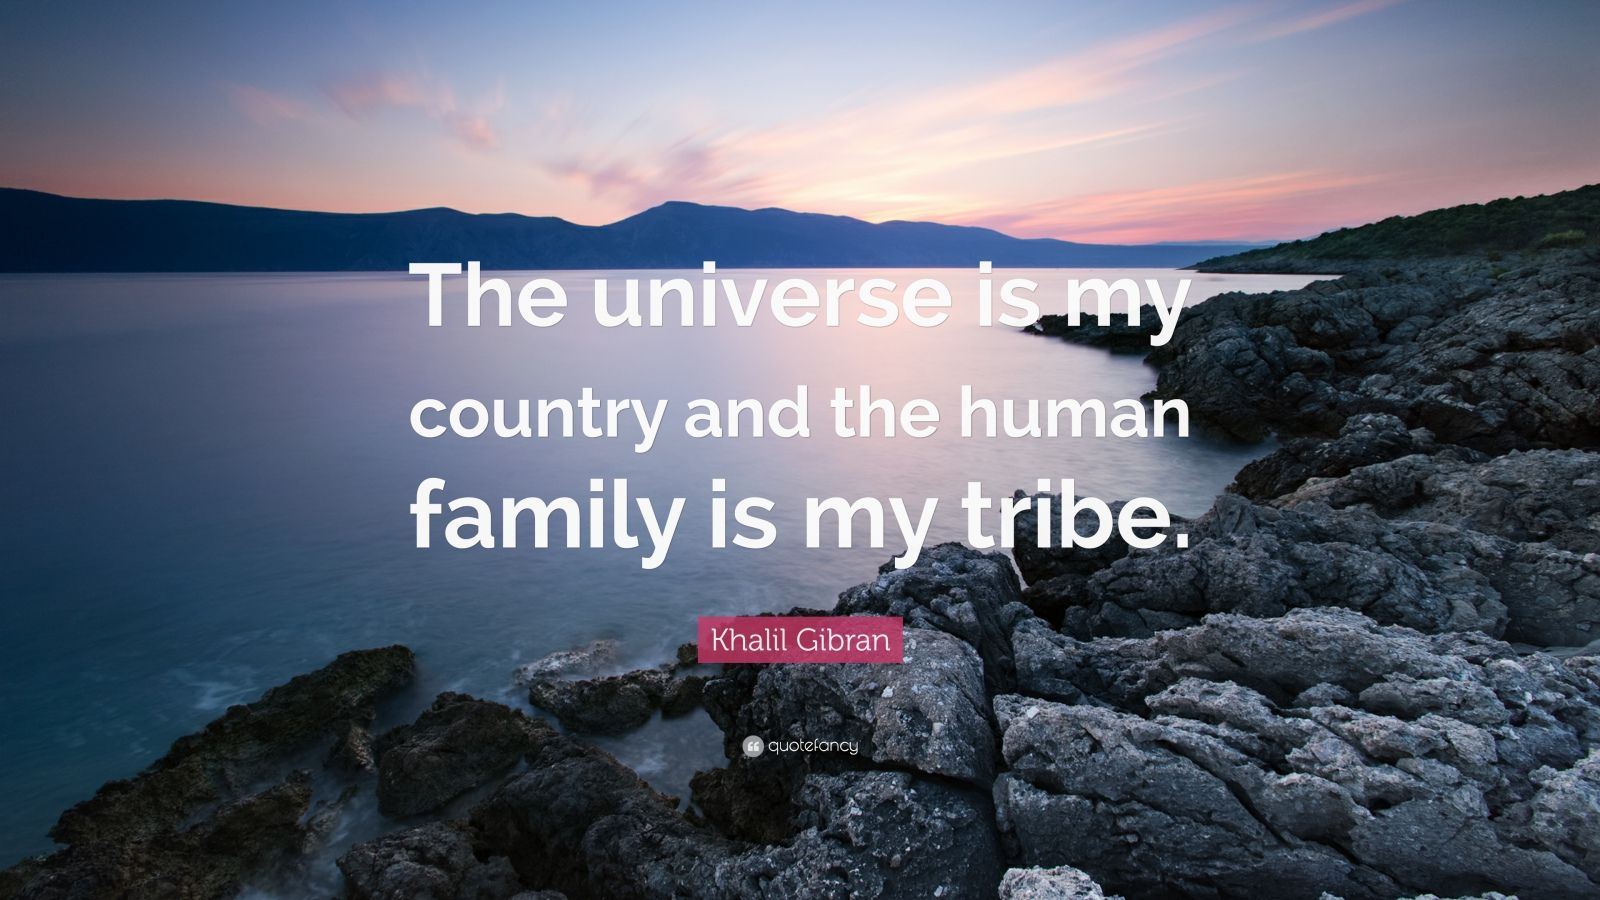 """Khalil Gibran Quote: """"The universe is my country and the human family is my tribe."""""""